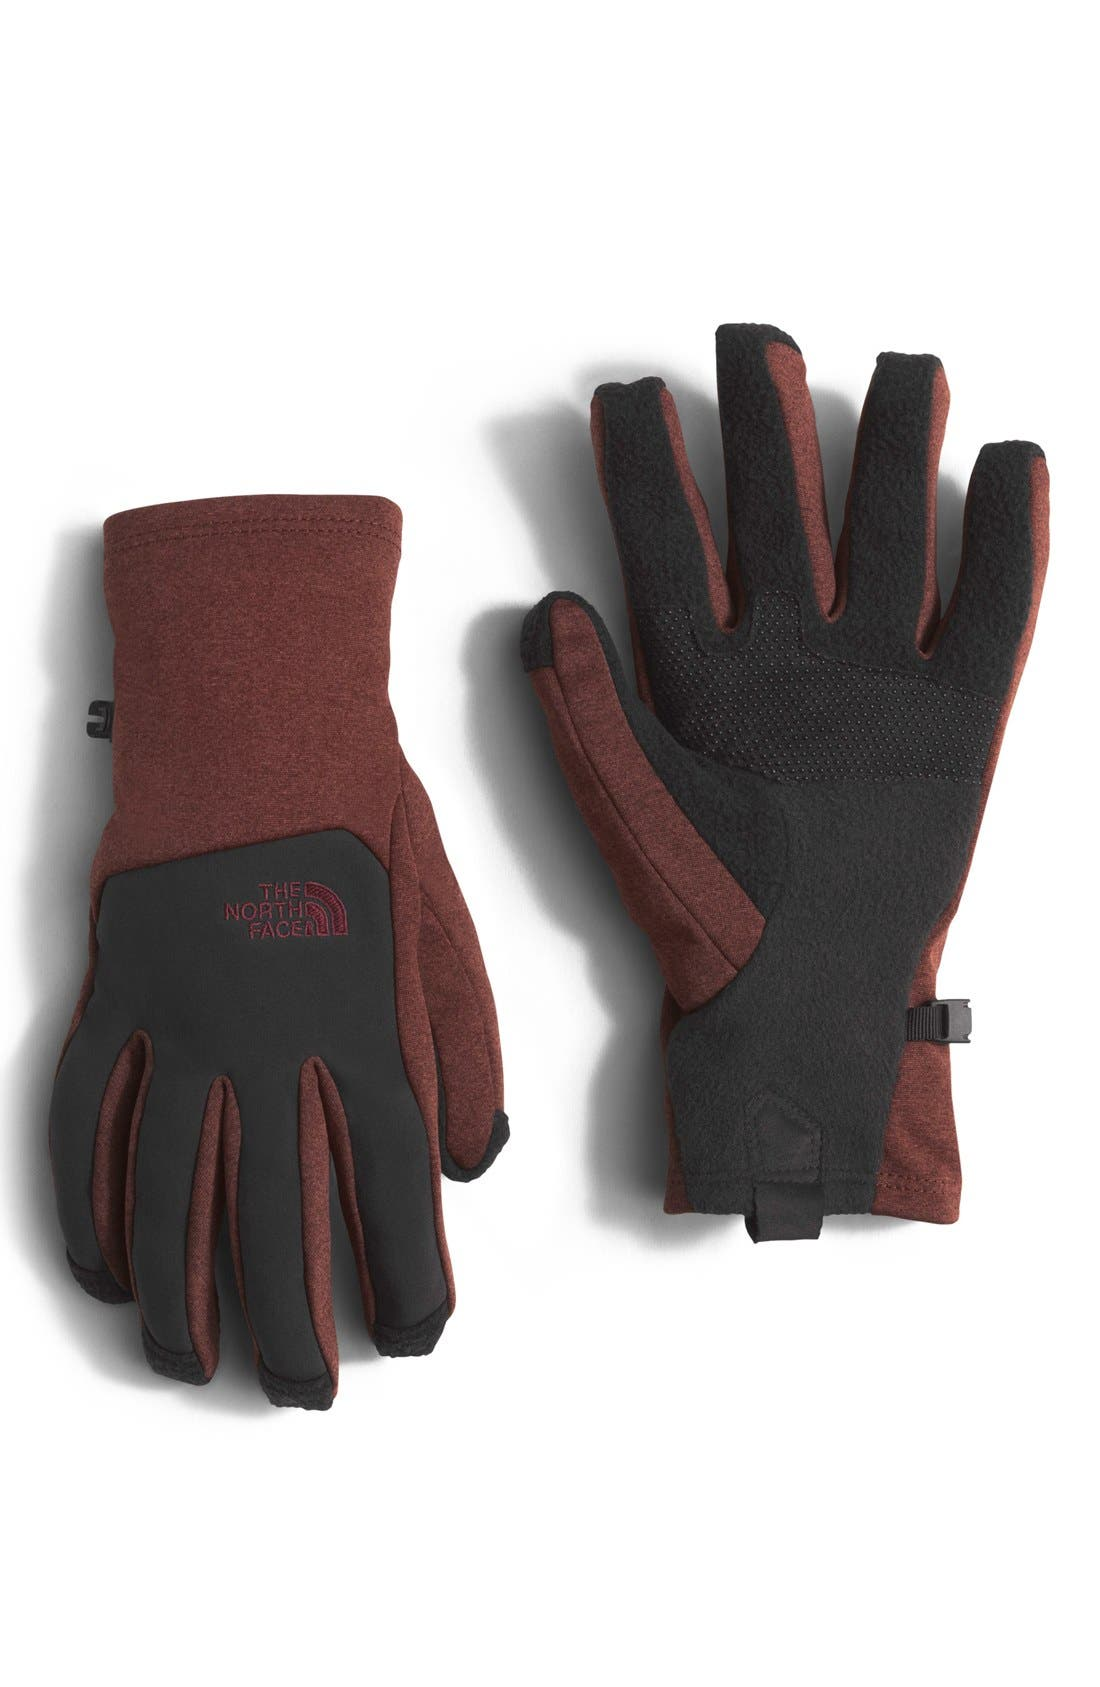 Alternate Image 1 Selected - The North Face 'CanyonWall E-Tip' Tech Gloves